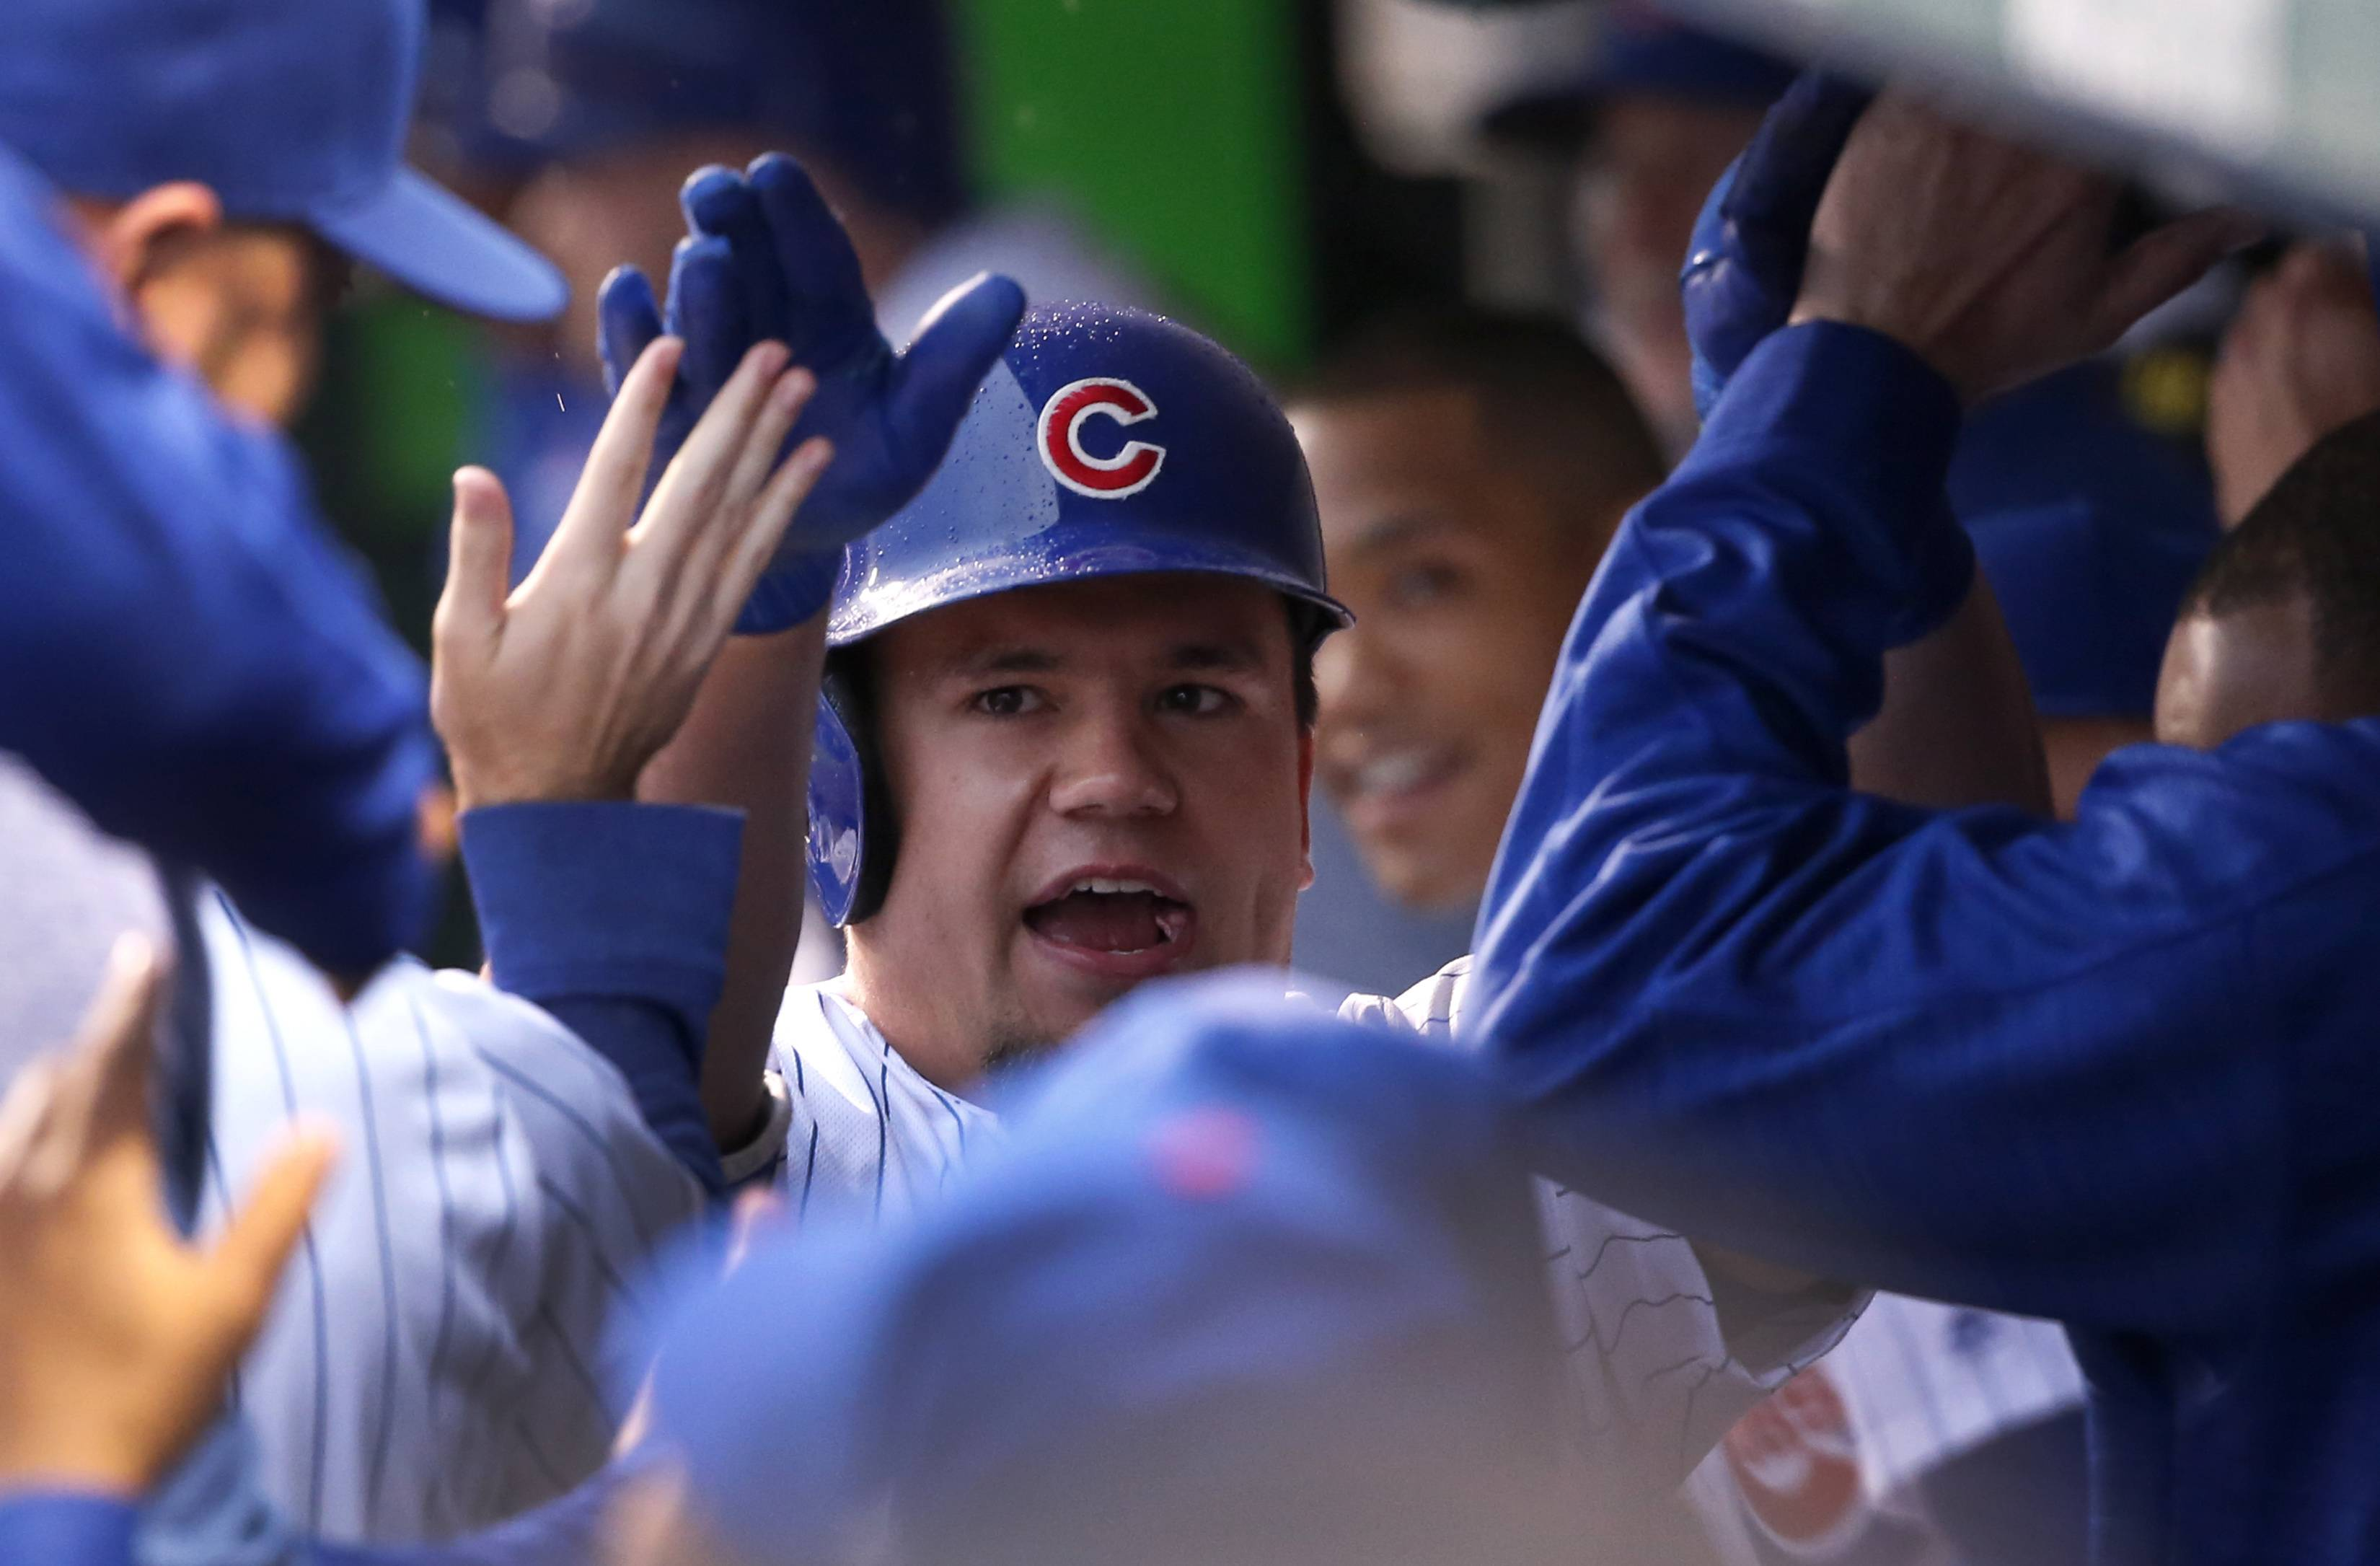 Cubs' Kyle Schwarber celebrates his home run in the dugout off San Francisco Giants starting pitcher Johnny Cueto during the first inning on Tuesday in Chicago.